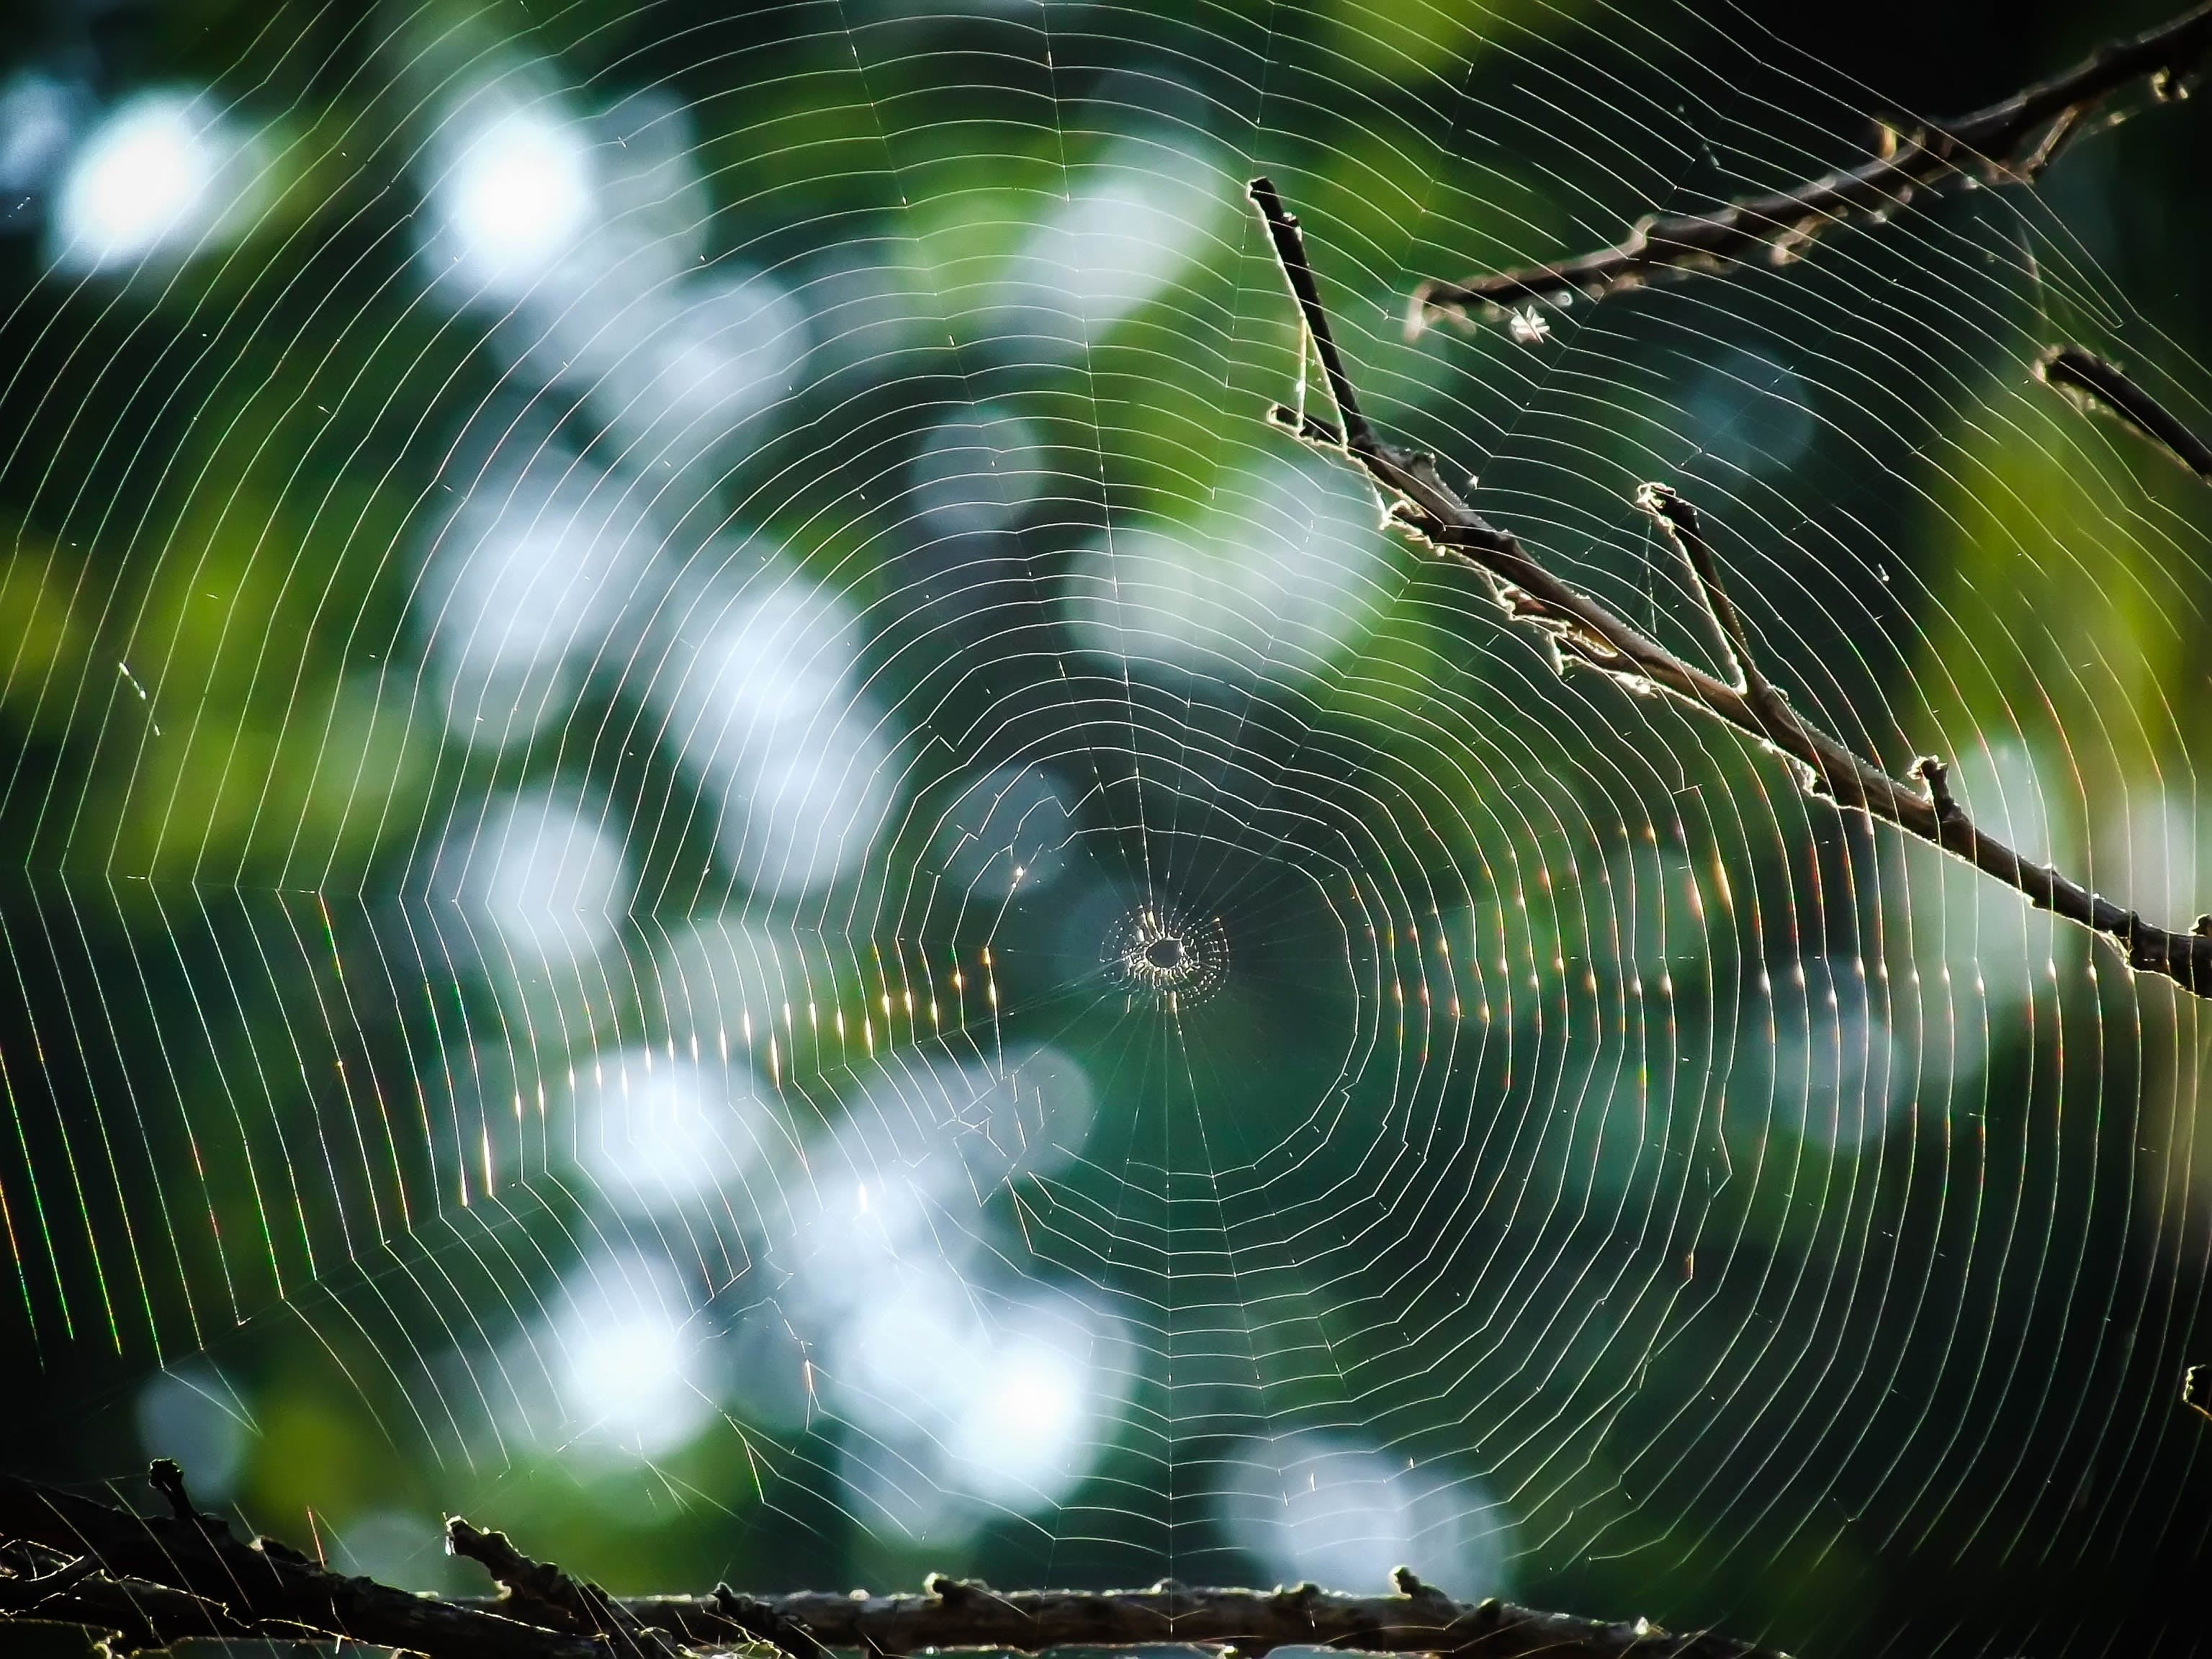 Macro Photography of Spider Web